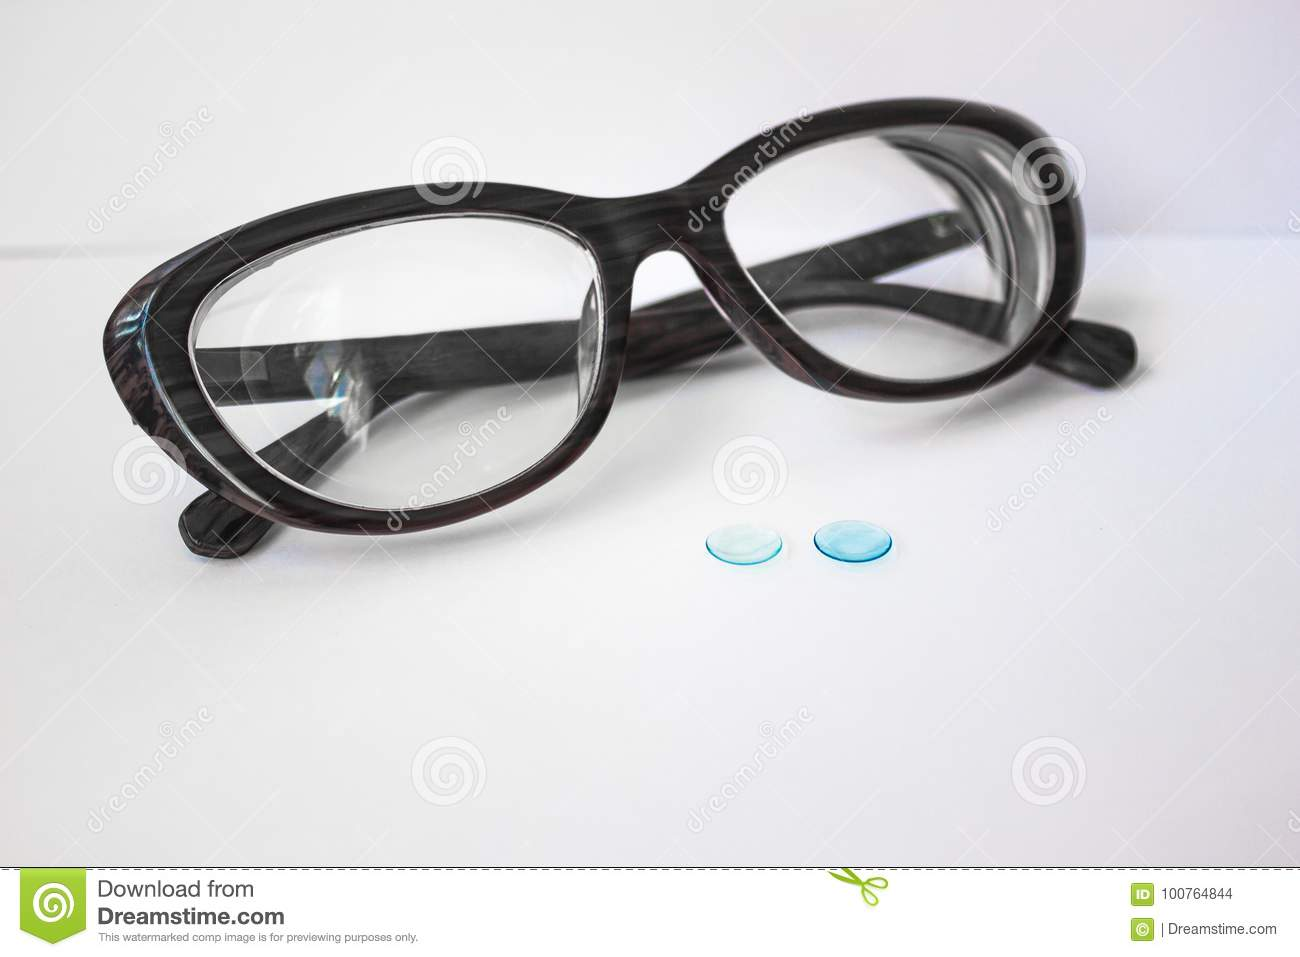 2706460d4a1 Rigid Contact Lenses And Glasses. Stock Photo - Image of white ...